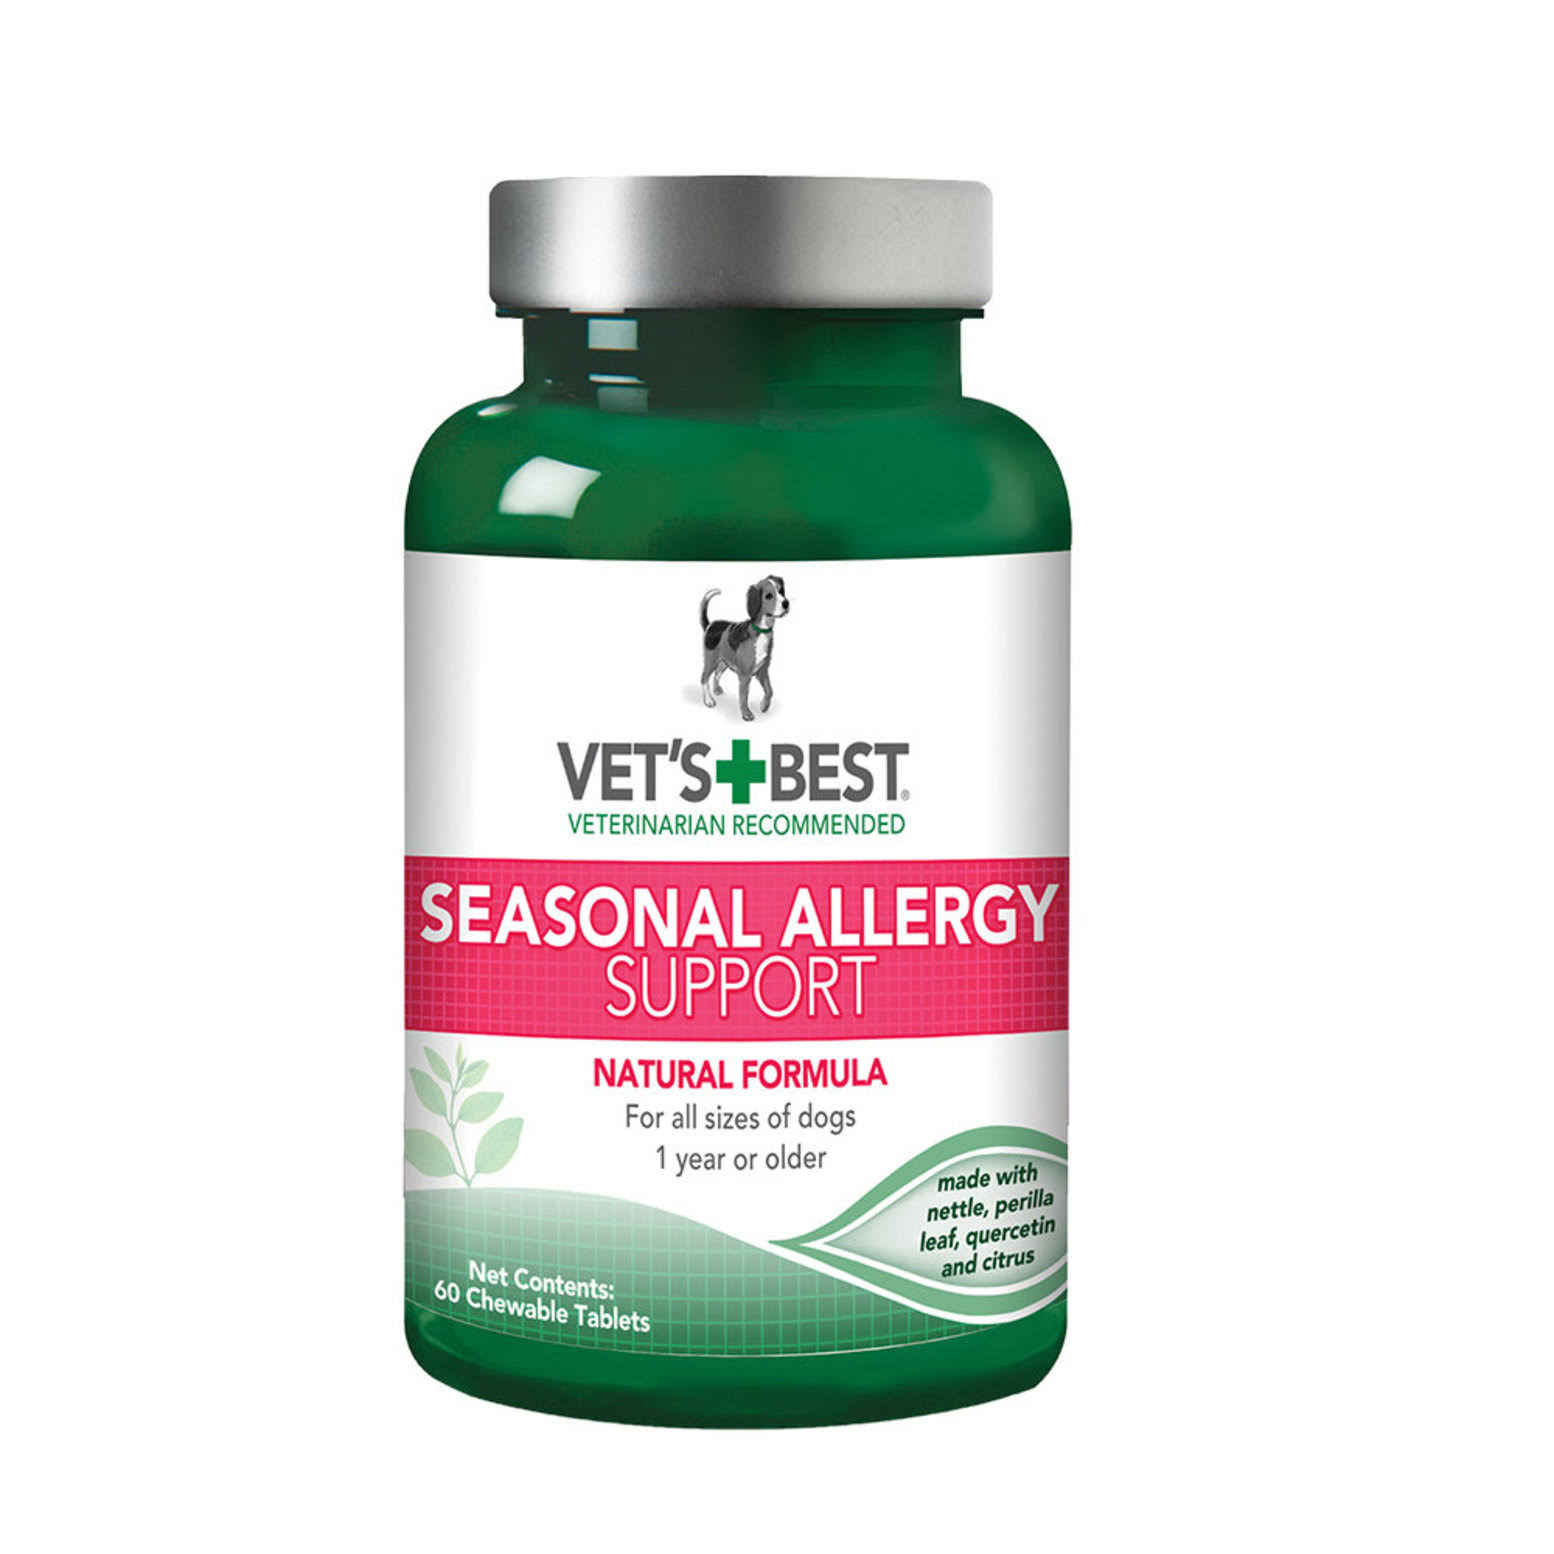 Vet's Best Seasonal Allergy Support Dog Supplement - 60 Tablets